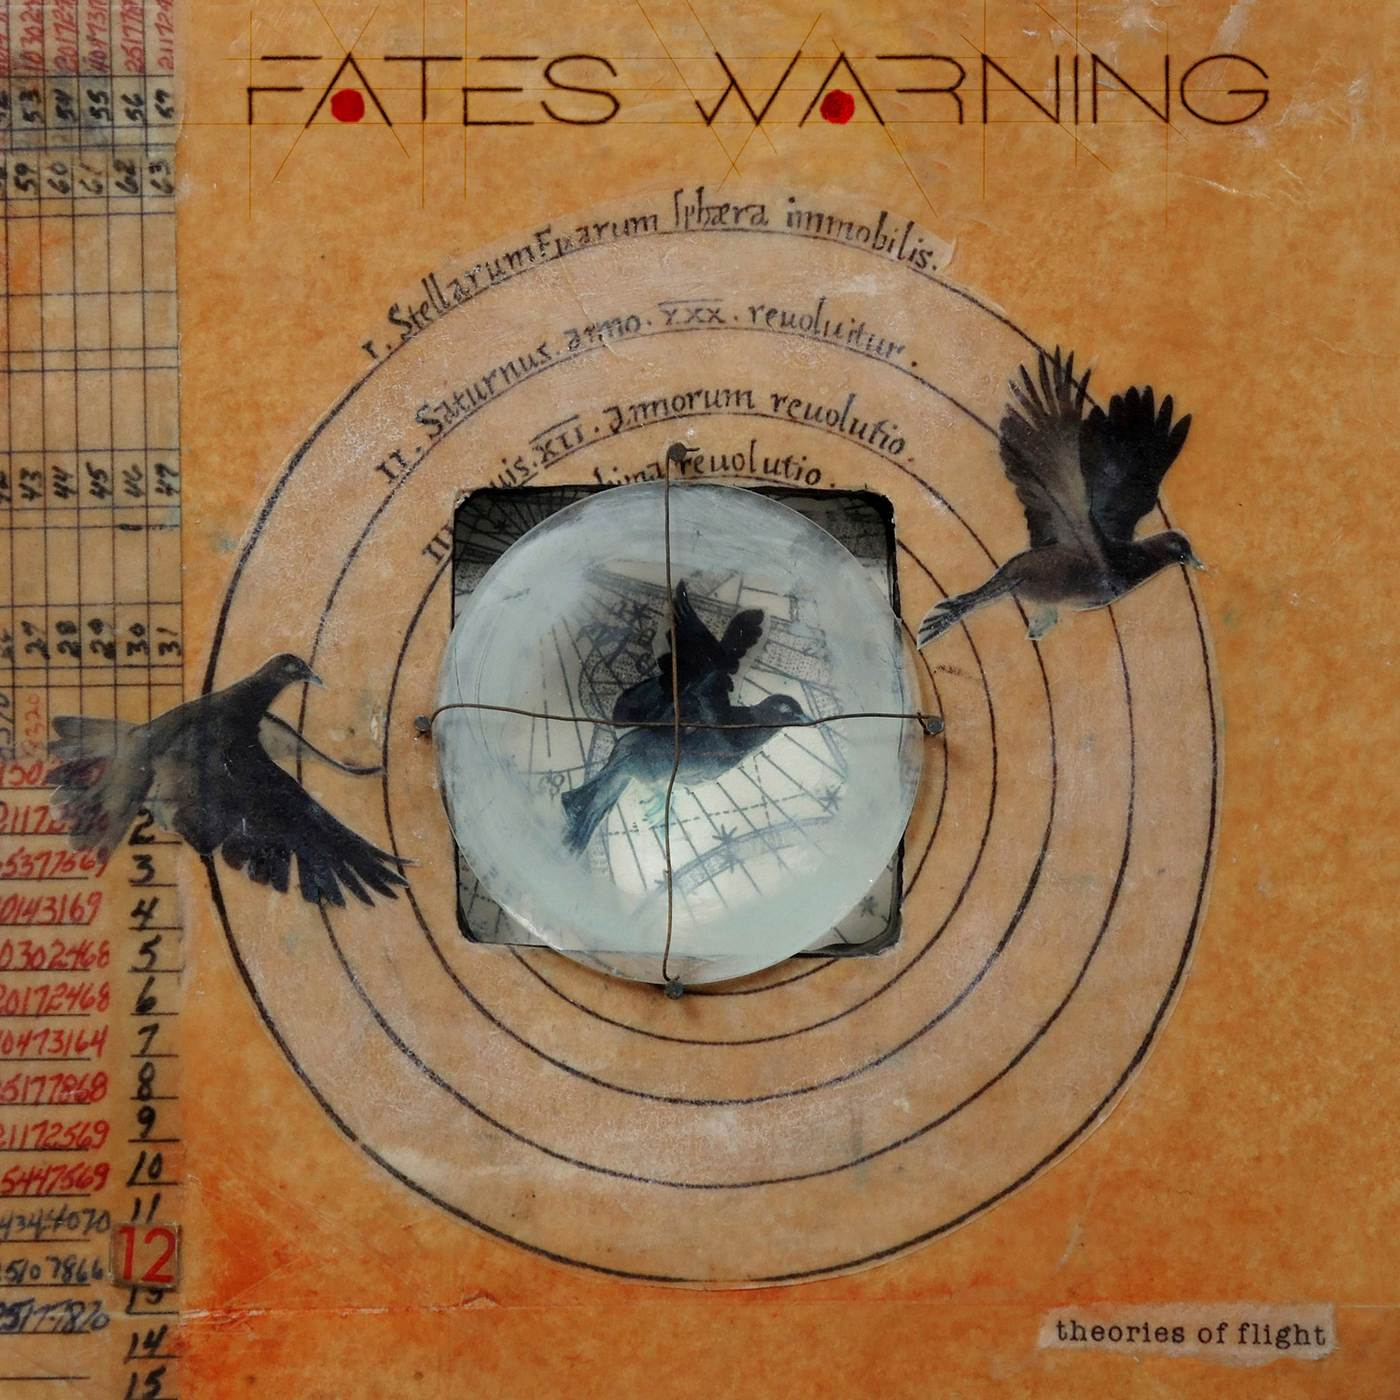 Fates Warning: Theories Of Flight (2016) Book Cover